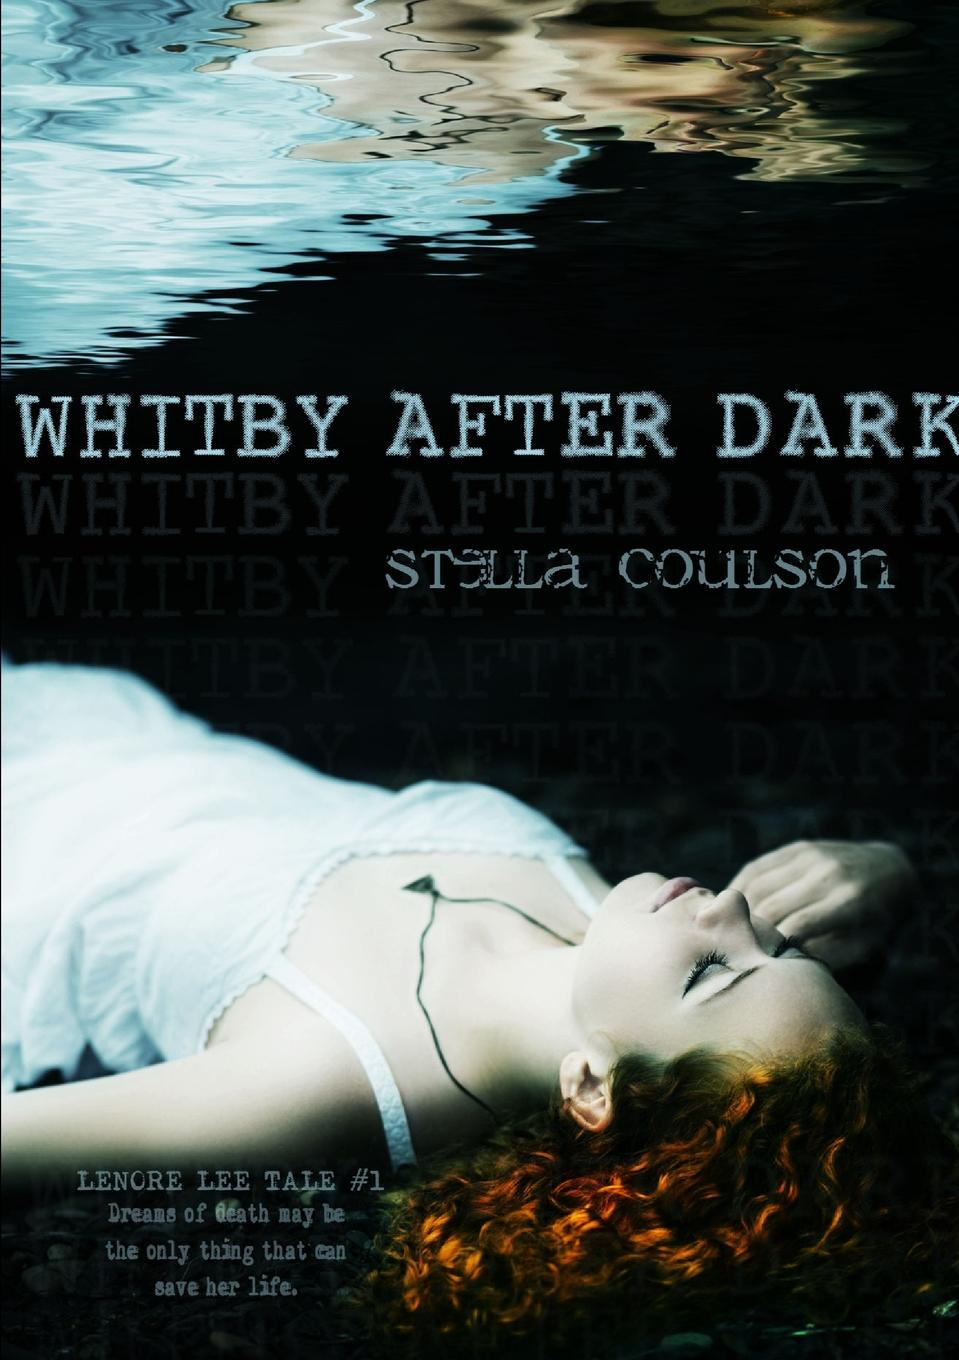 Stella Coulson Whitby After Dark disturbing the peace